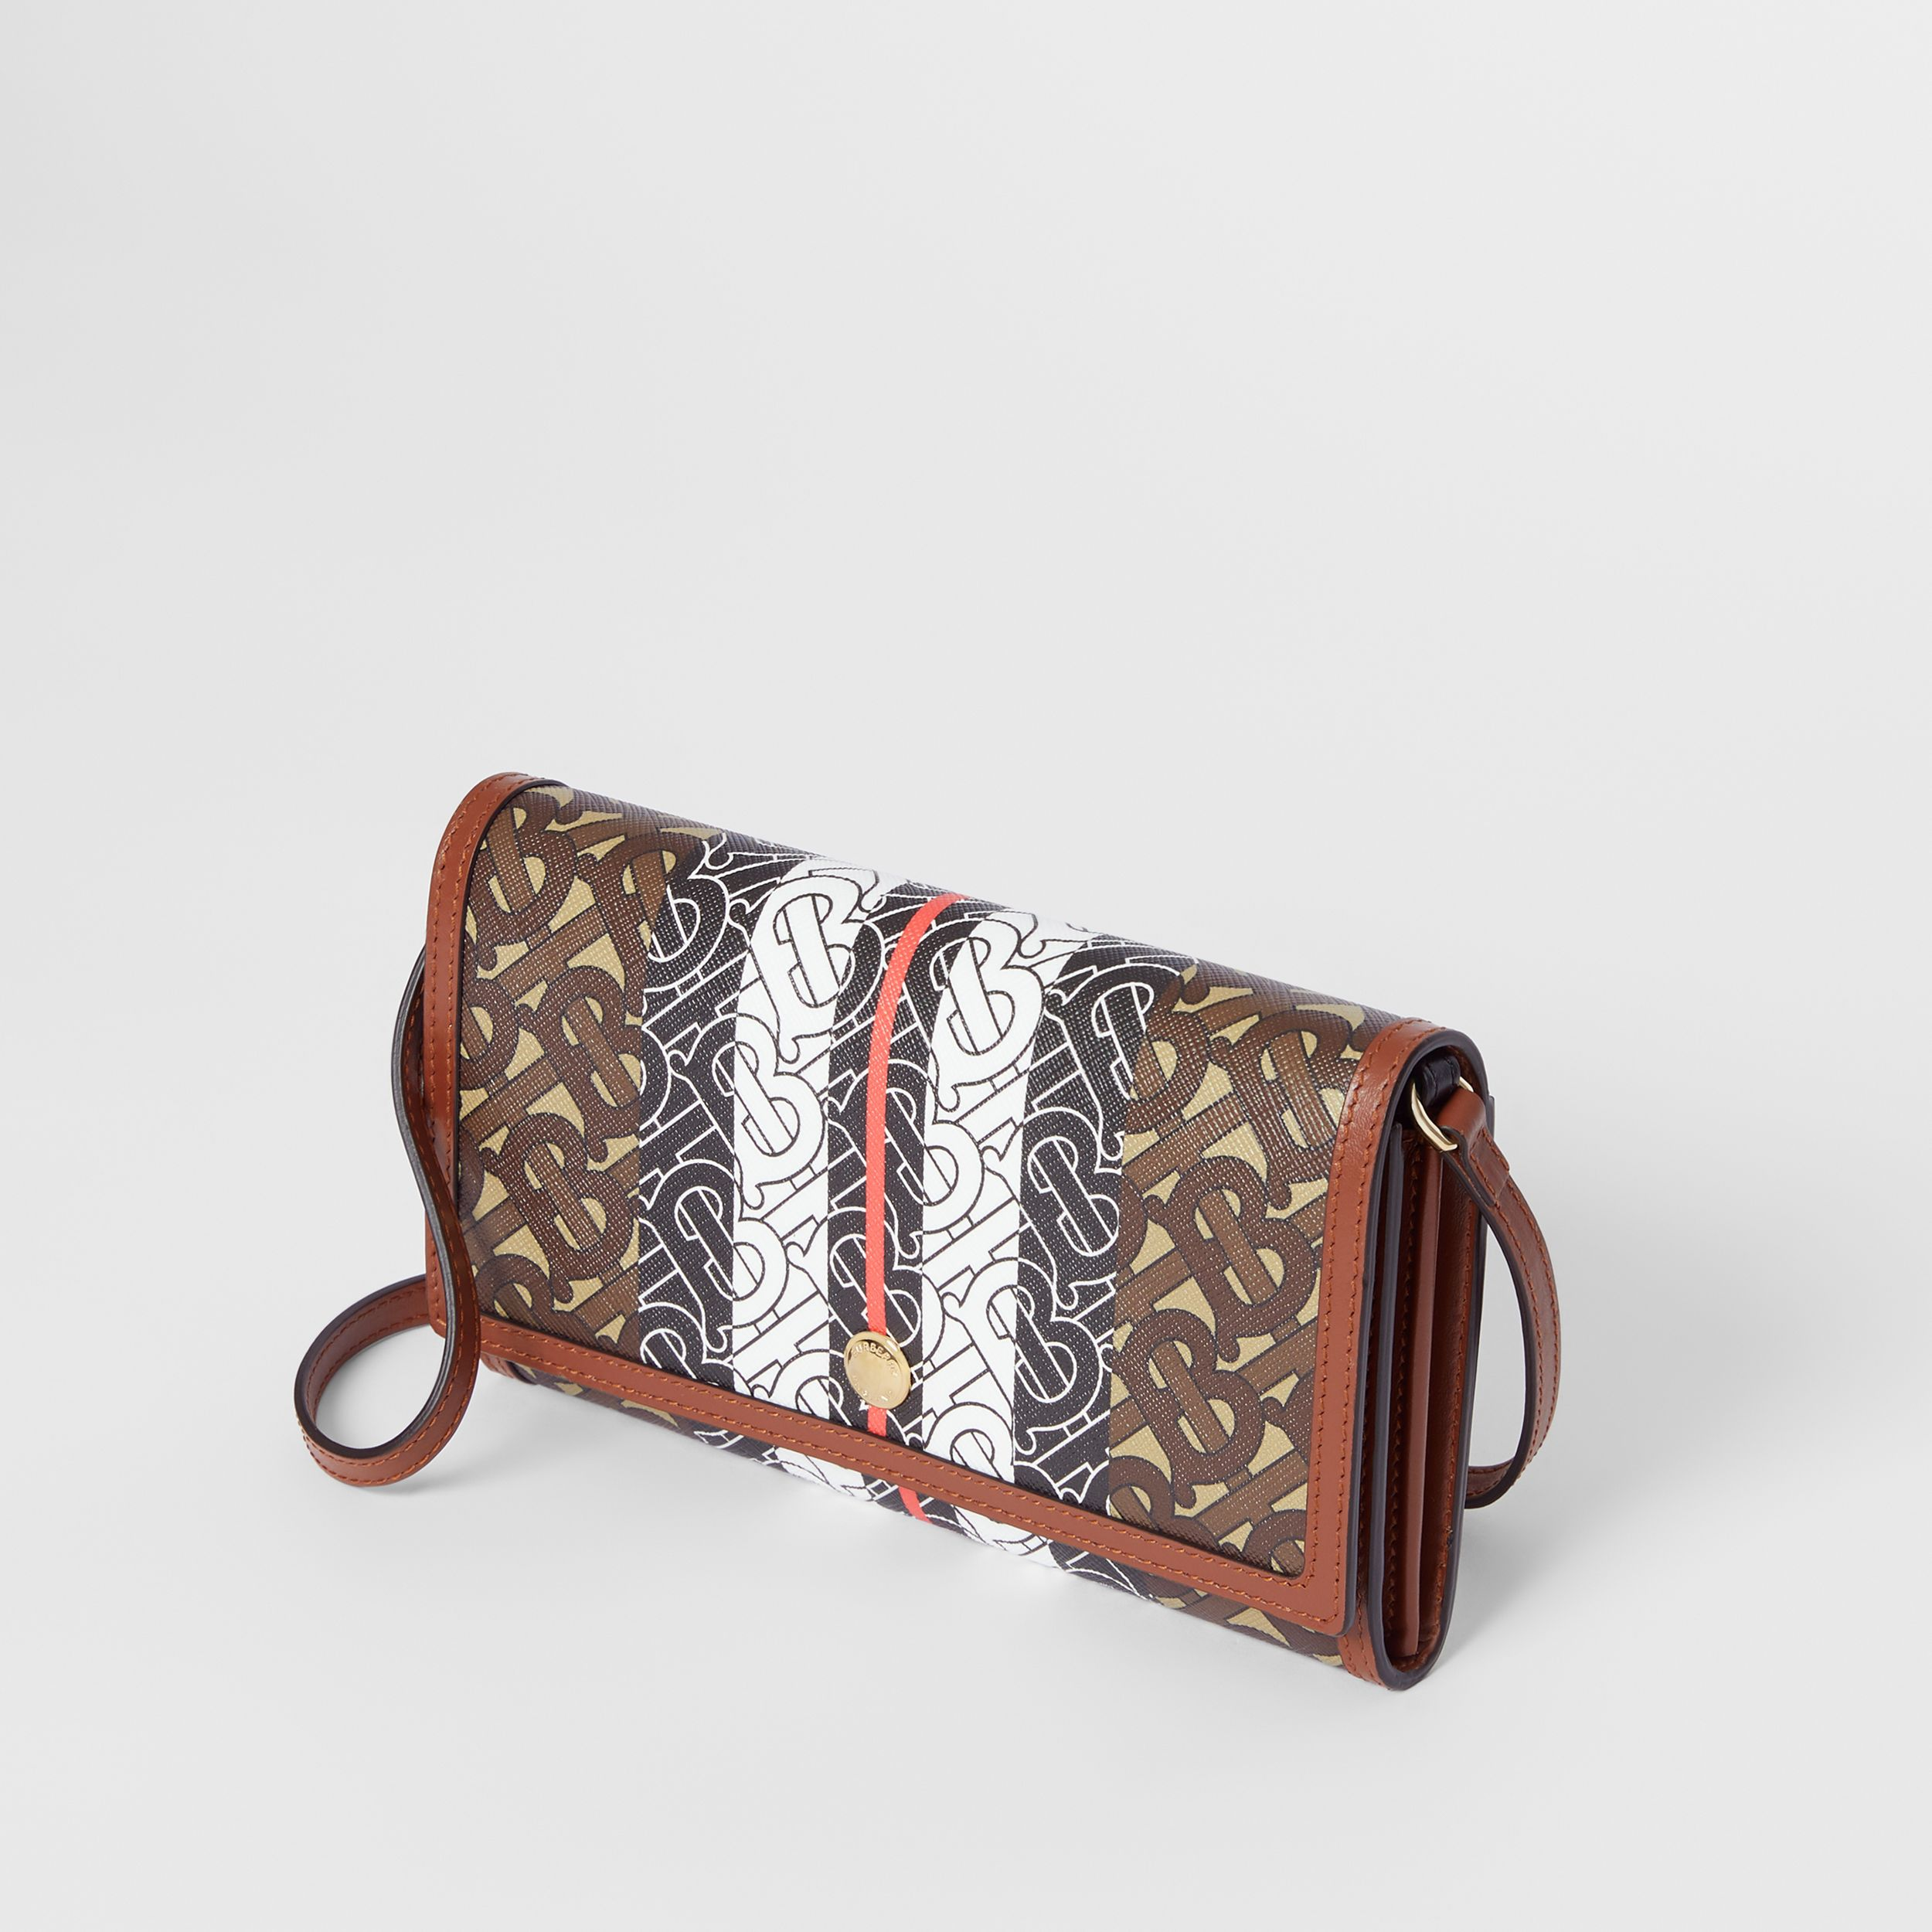 Monogram Stripe E-canvas Wallet with Strap in Bridle Brown - Women | Burberry Australia - 4